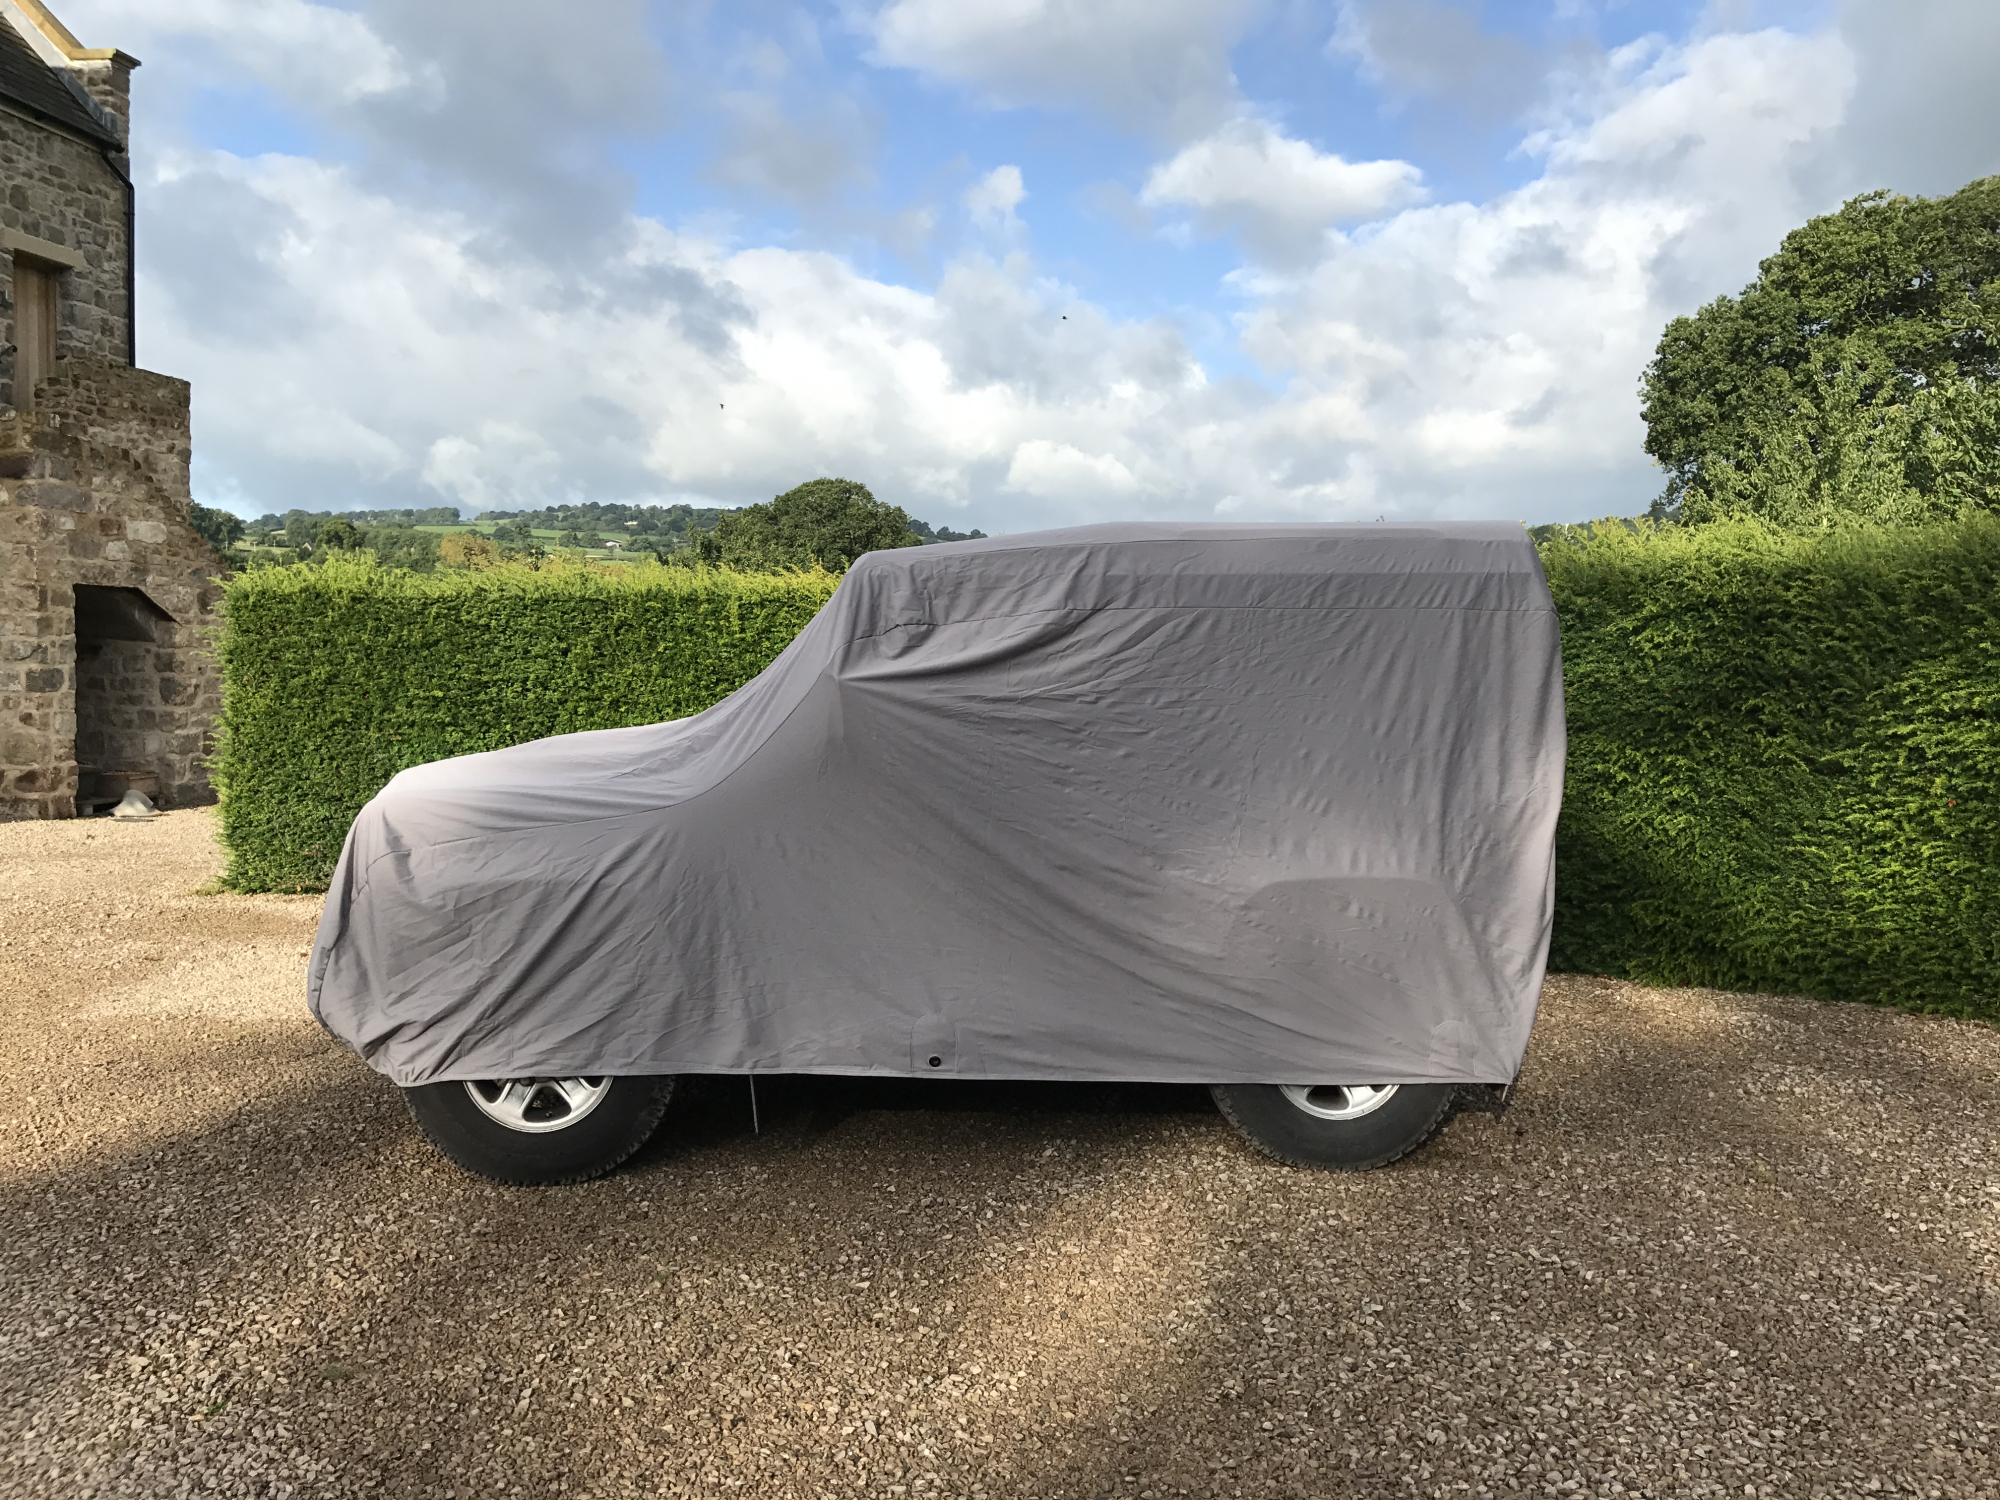 https://www.classicadditions.com/upload/images/blog/10111/-new-land-rover-defender-90-ultimate-outdoor-cover_10111_main_size3.jpg